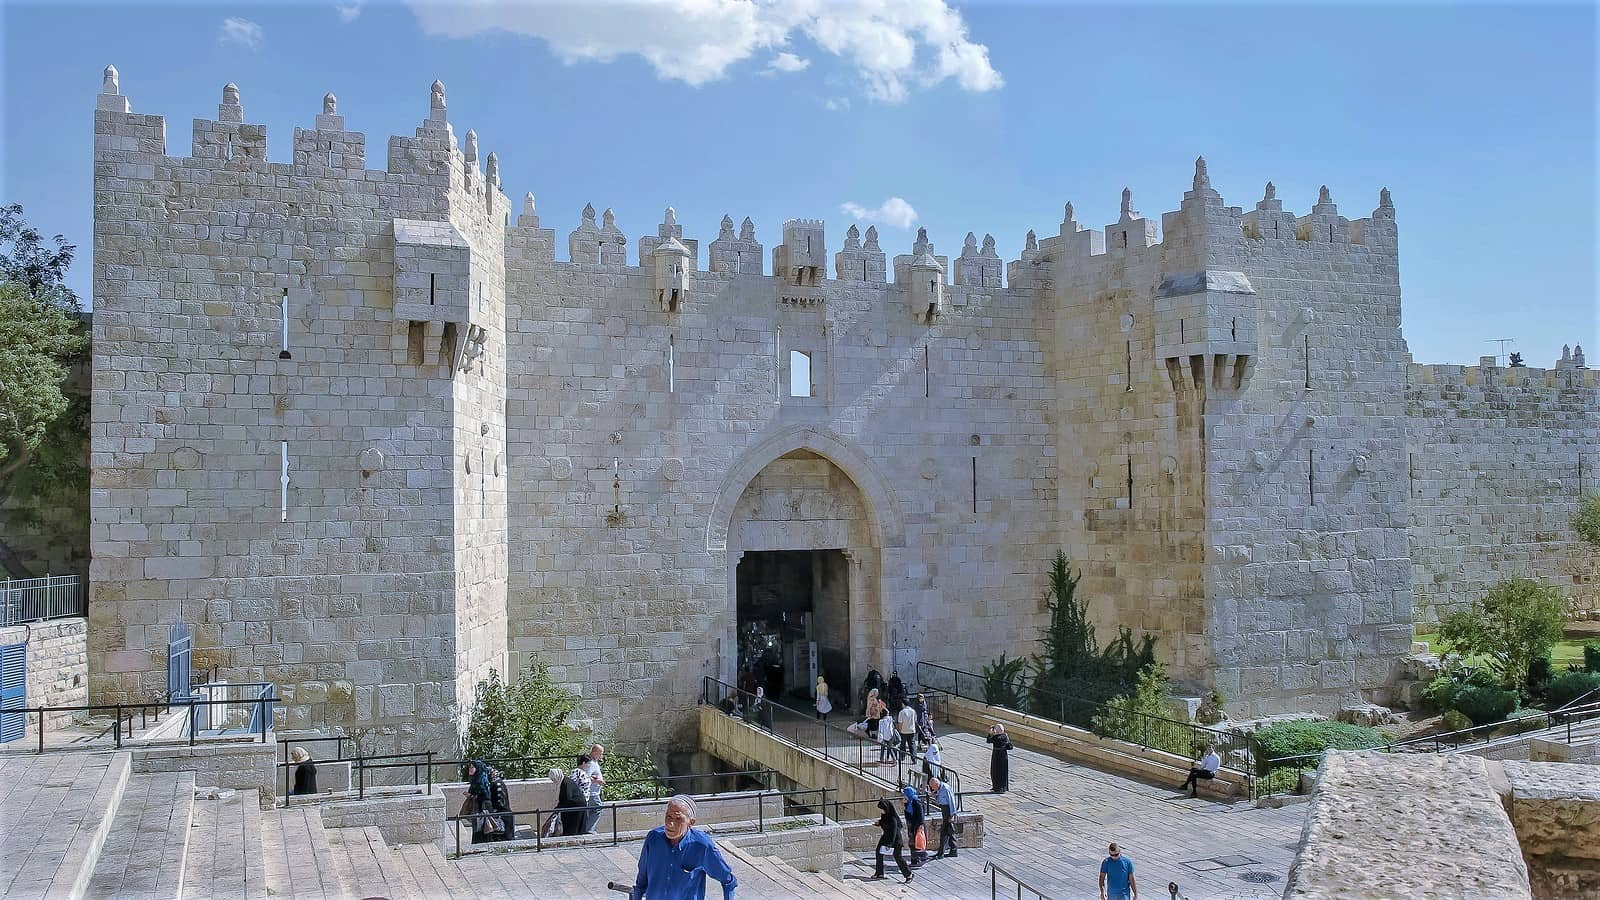 Damascus Gate in the old city in Jerusalem